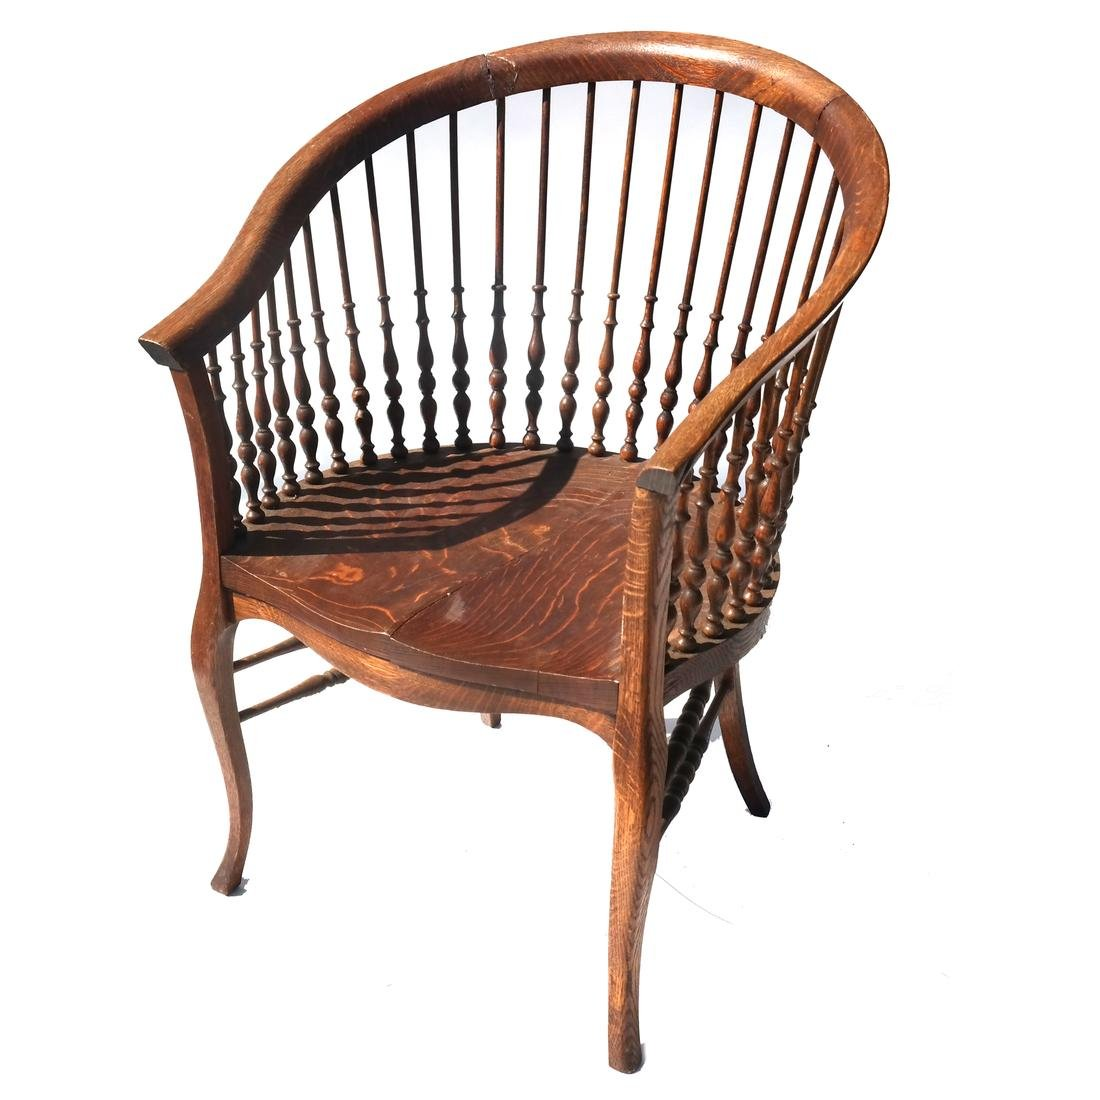 Victorian Oak Spindle-Turned Tub Chair